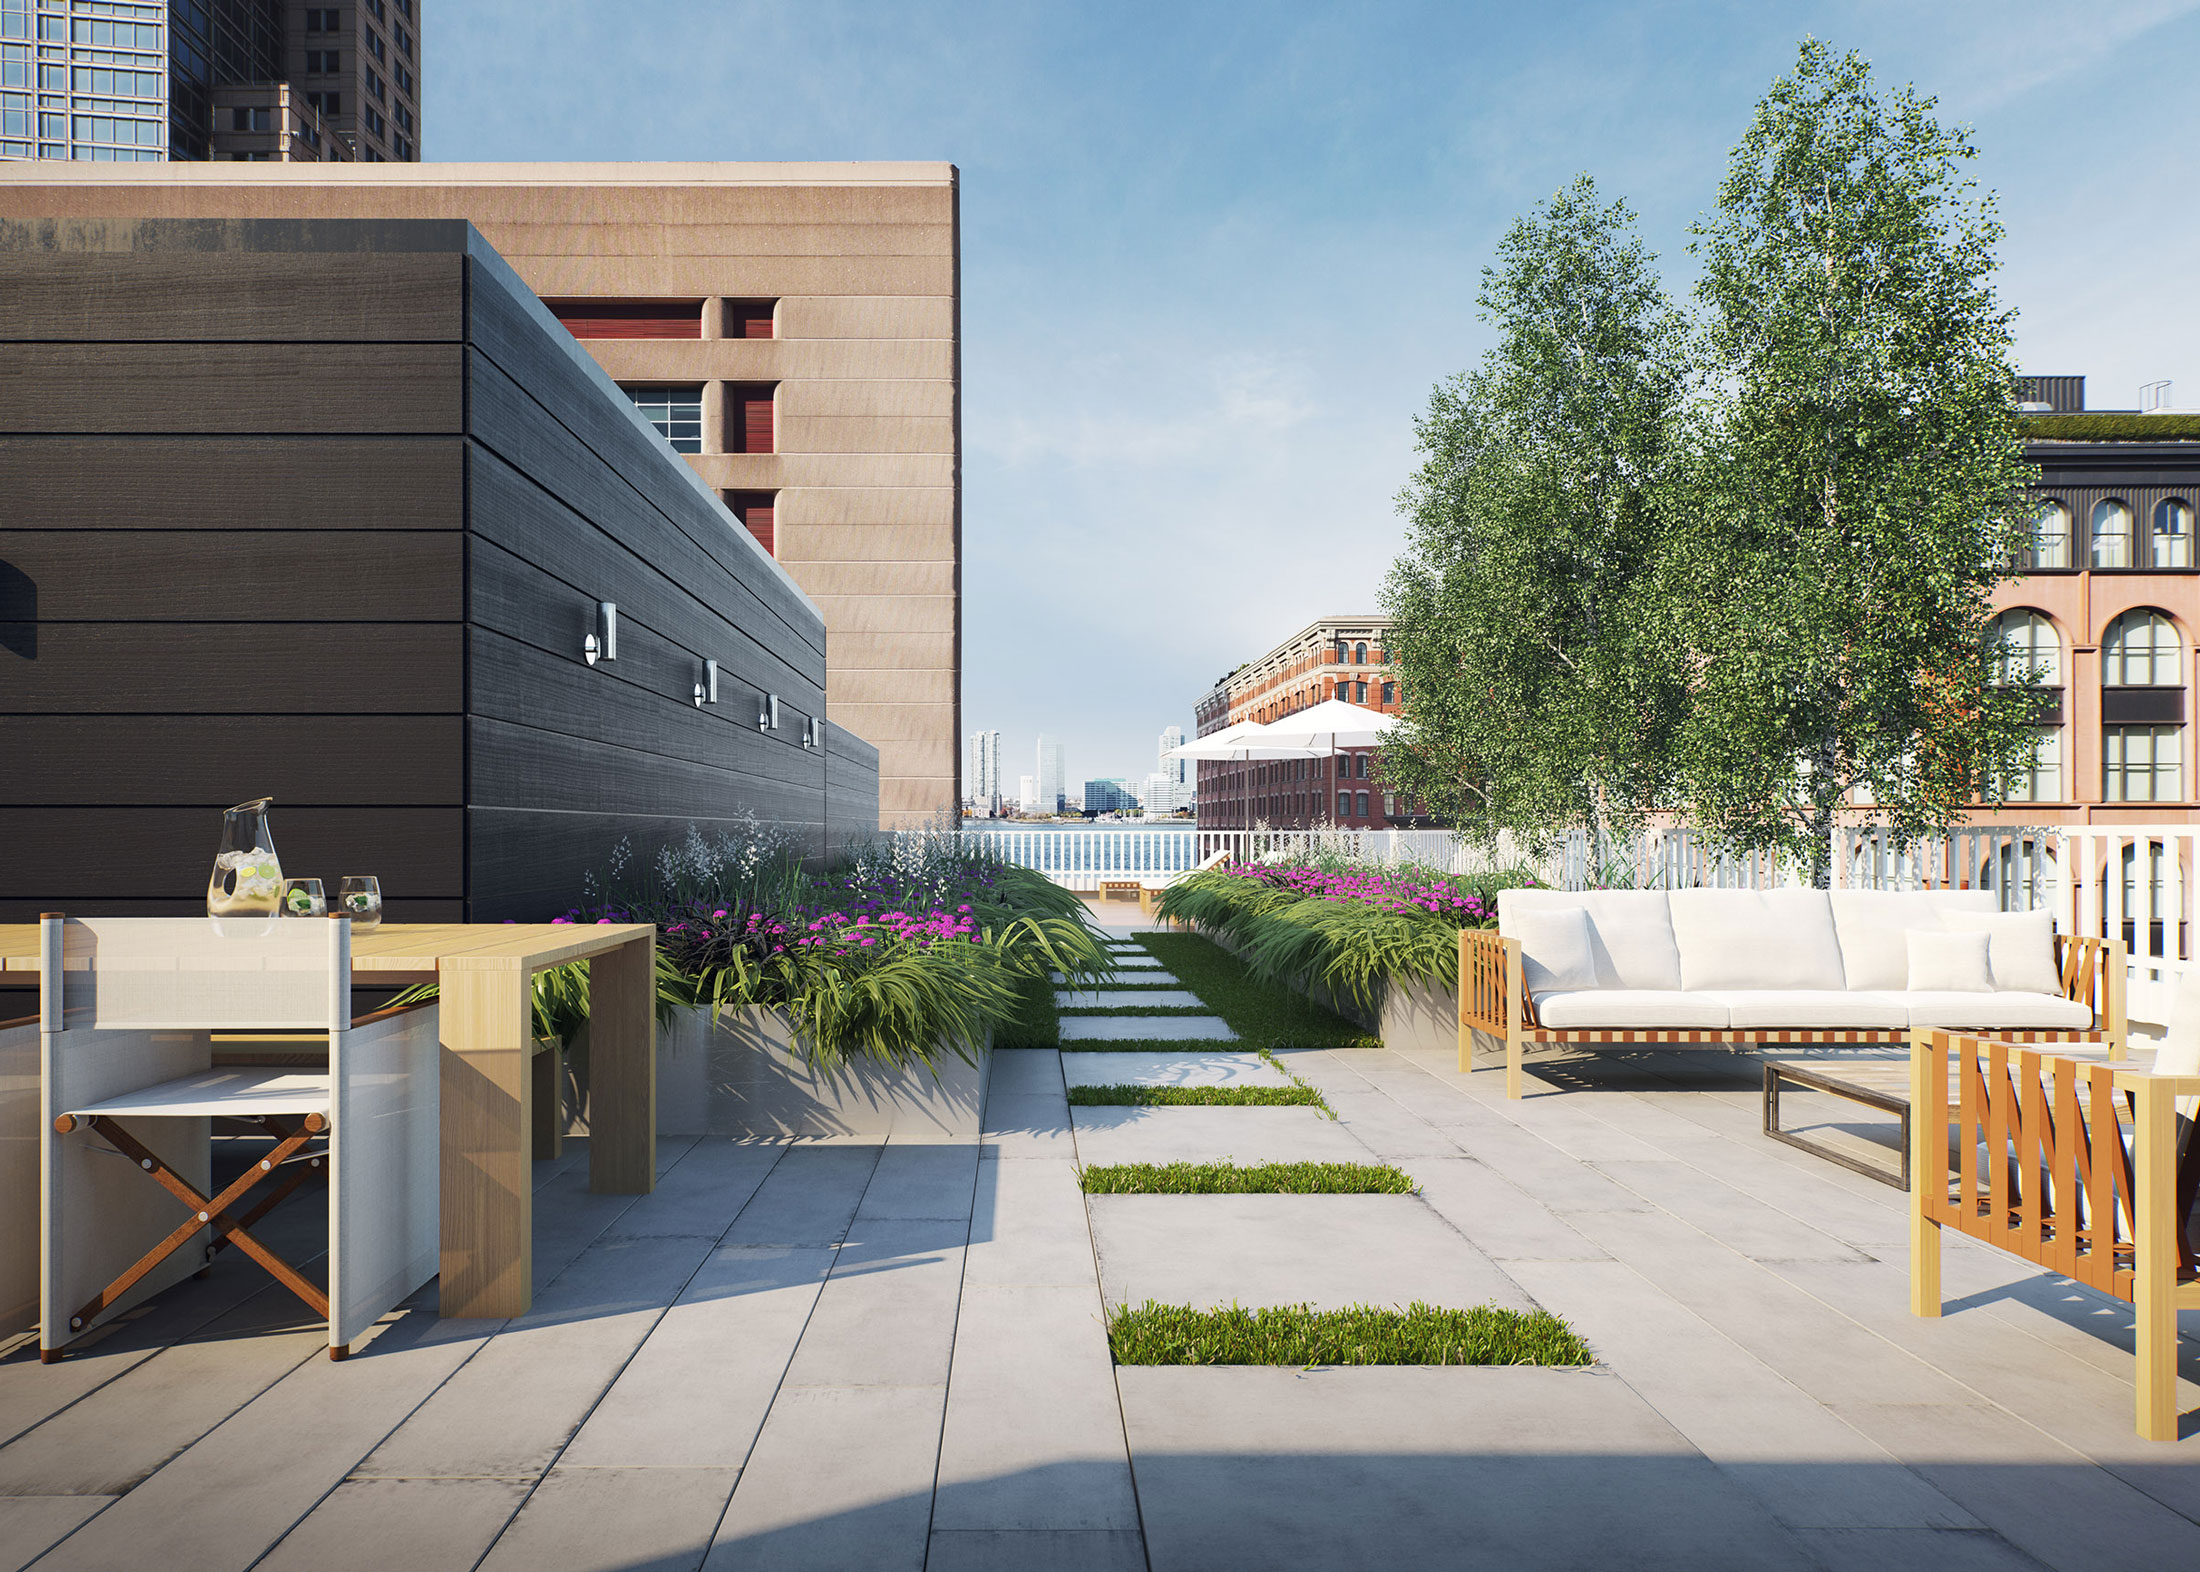 Architectural Rendering of the rooftop of the 15 Hubert Street project located in Tribeca, New York City